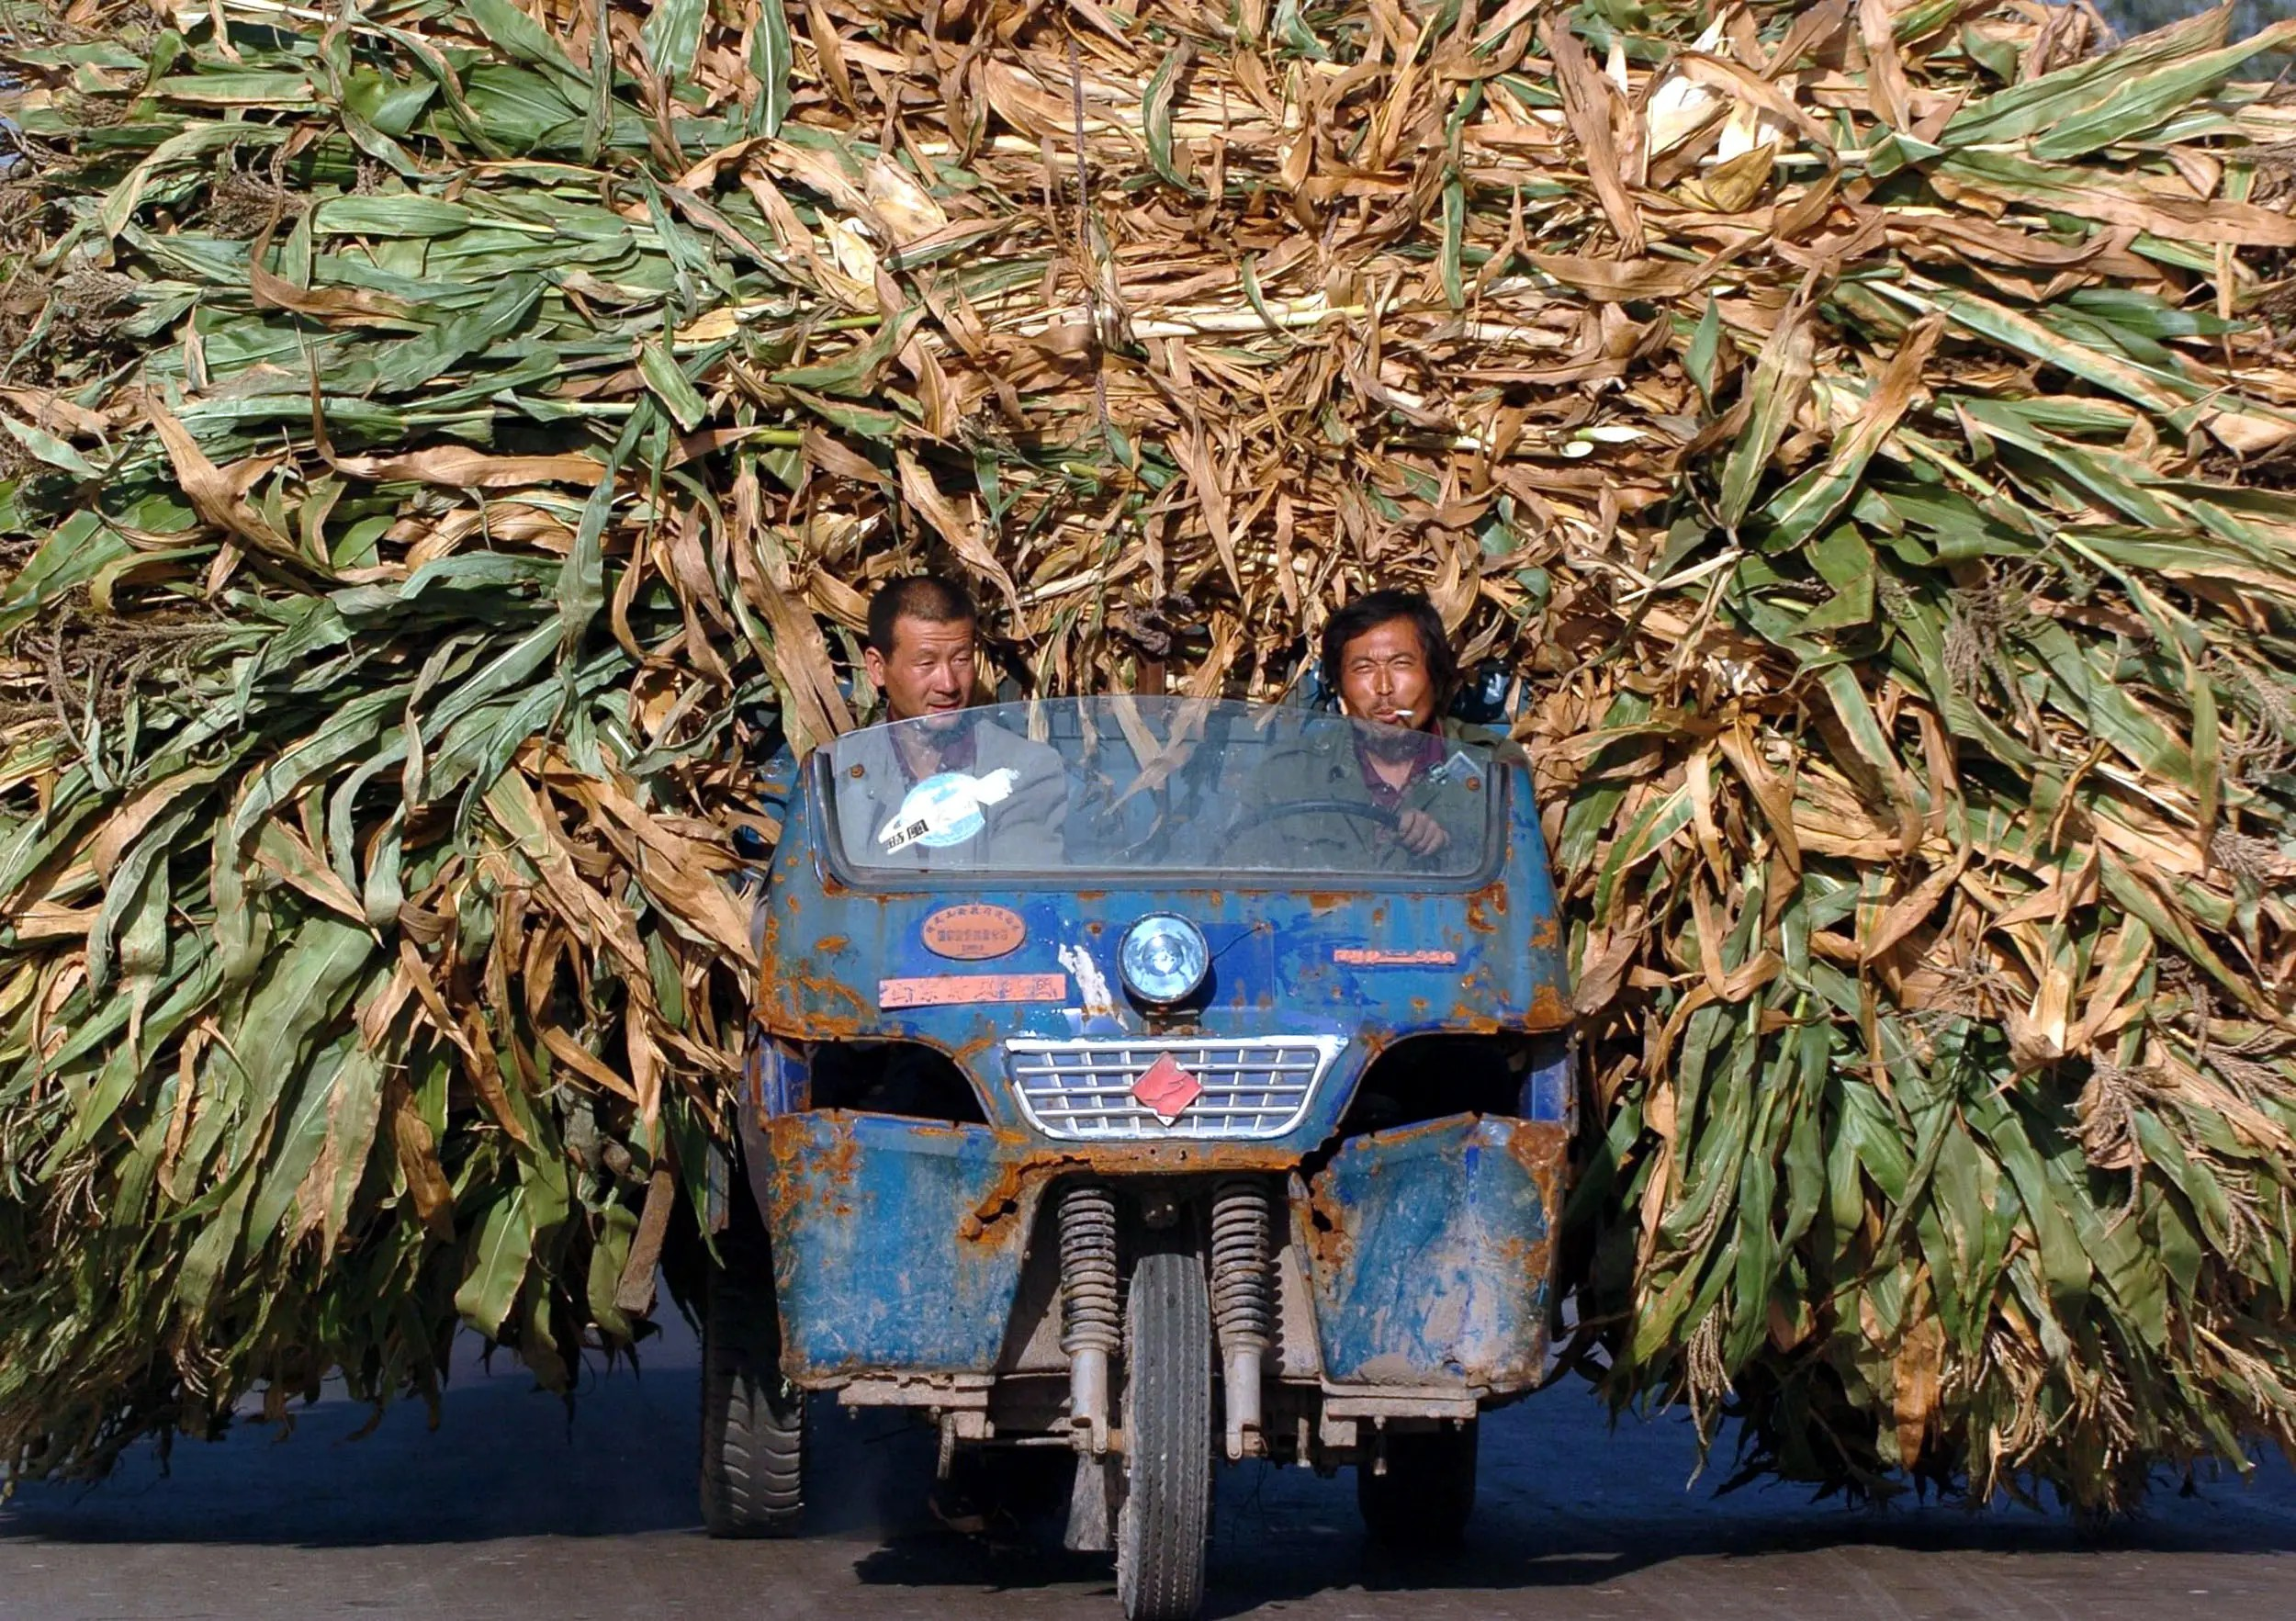 These Chinese farmers are transporting harvested barley.